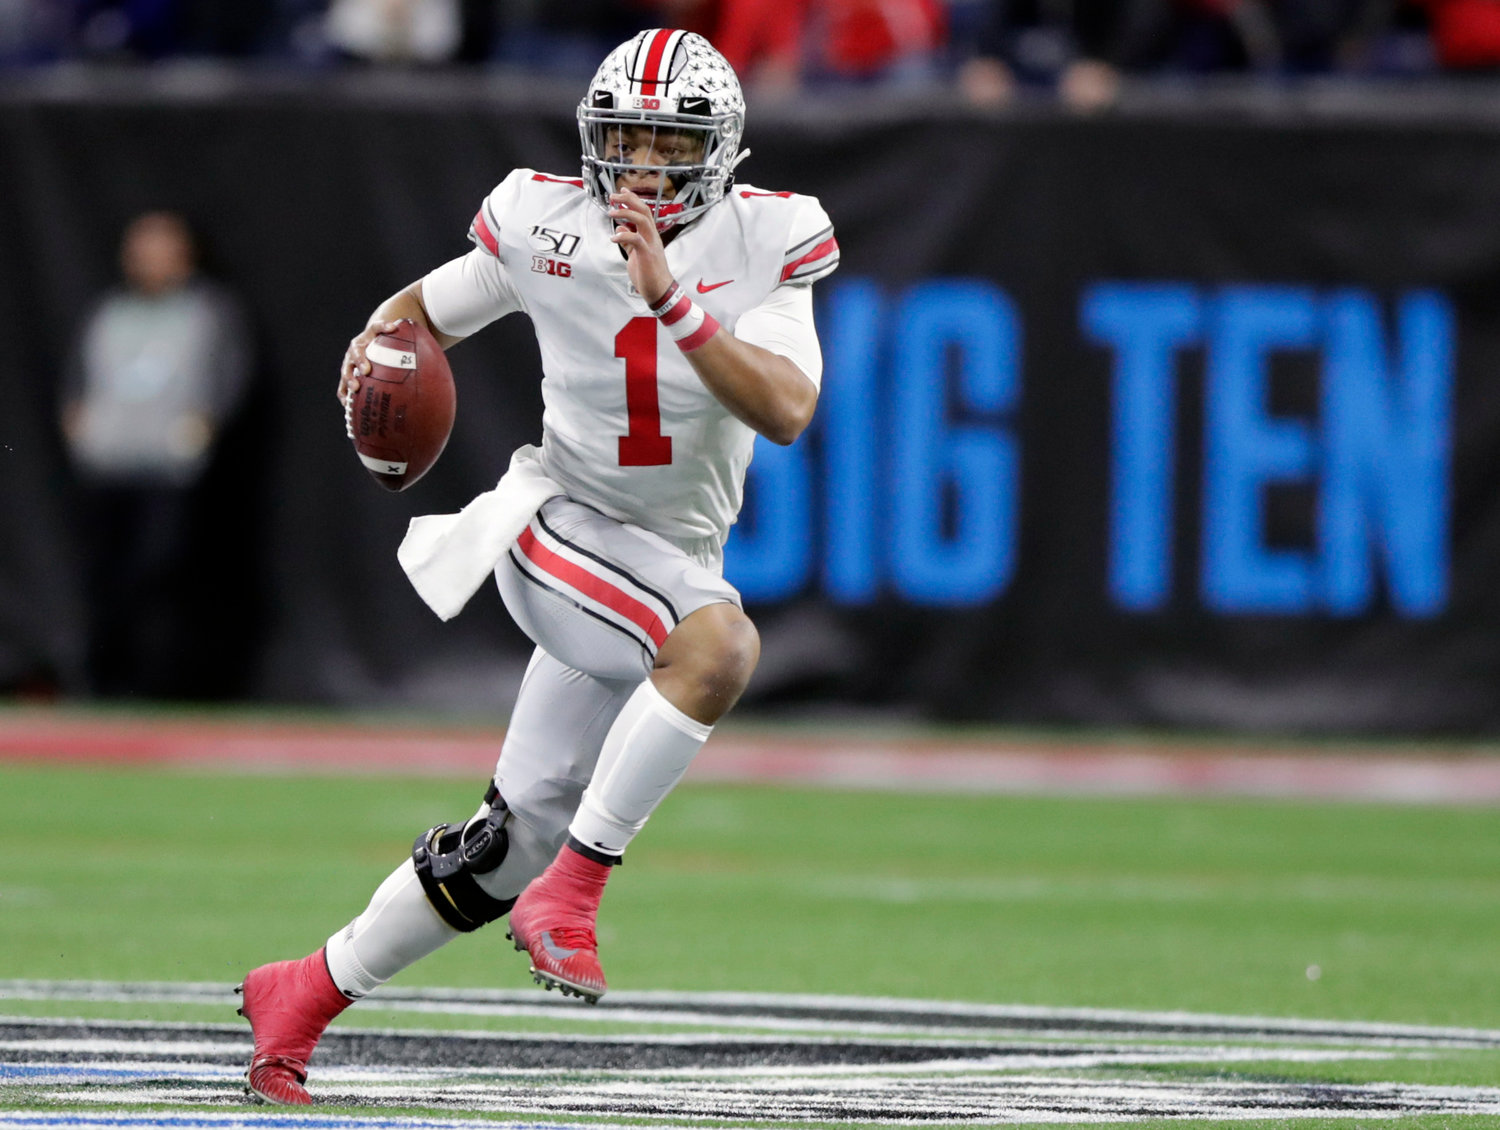 Ohio State quarterback Justin Fields (1) runs with the ball past Wisconsin defensive end Isaiahh Loudermilk during the first half of the Big Ten championship NCAA college football game, Saturday, Dec. 7, 2019, in Indianapolis. (AP Photo/Michael Conroy)